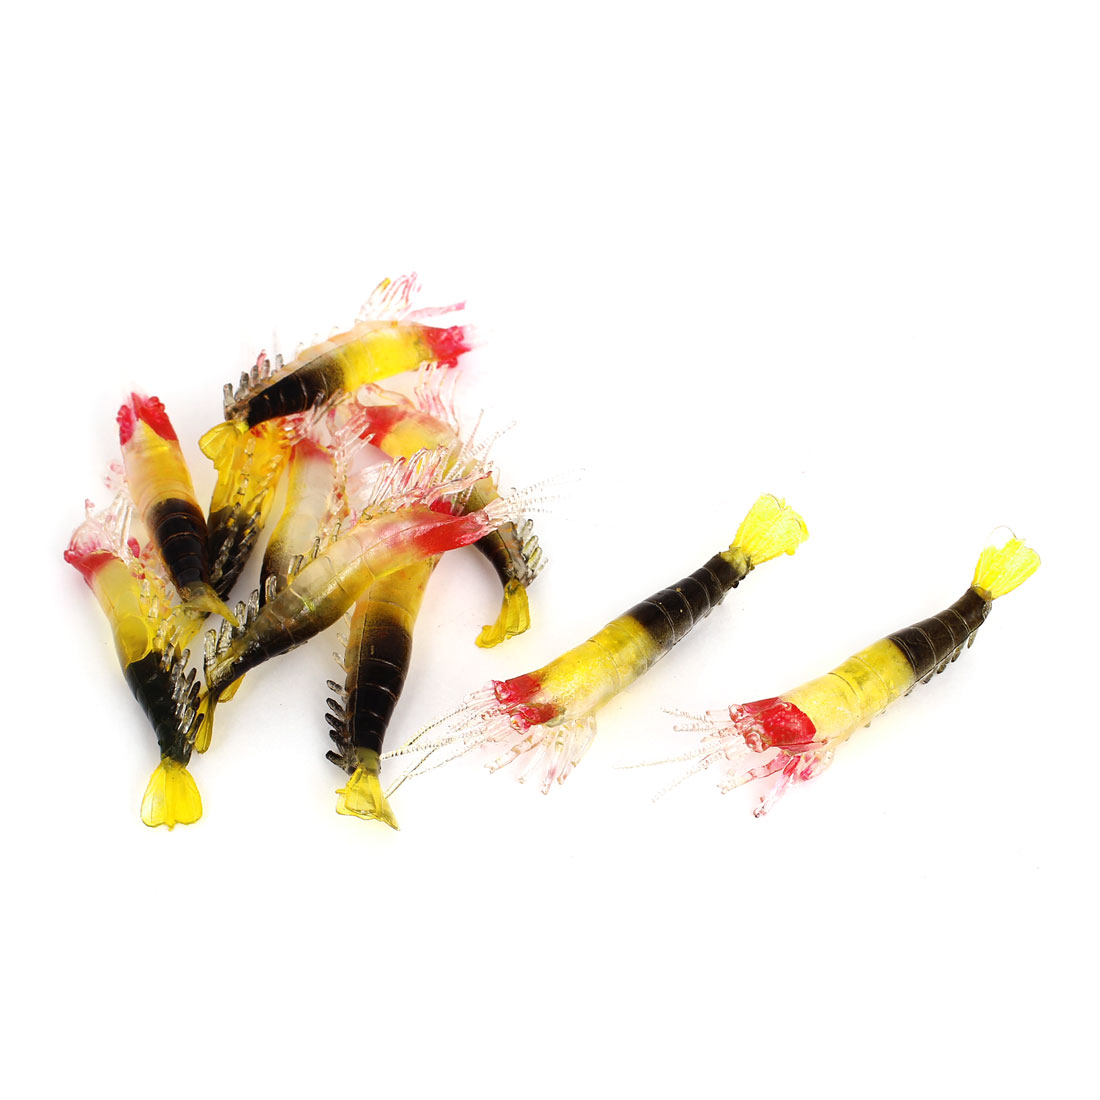 Manmade Artificial Silicone Shrimp Shaped Fishing Fish Baits Lures 10 Pcs